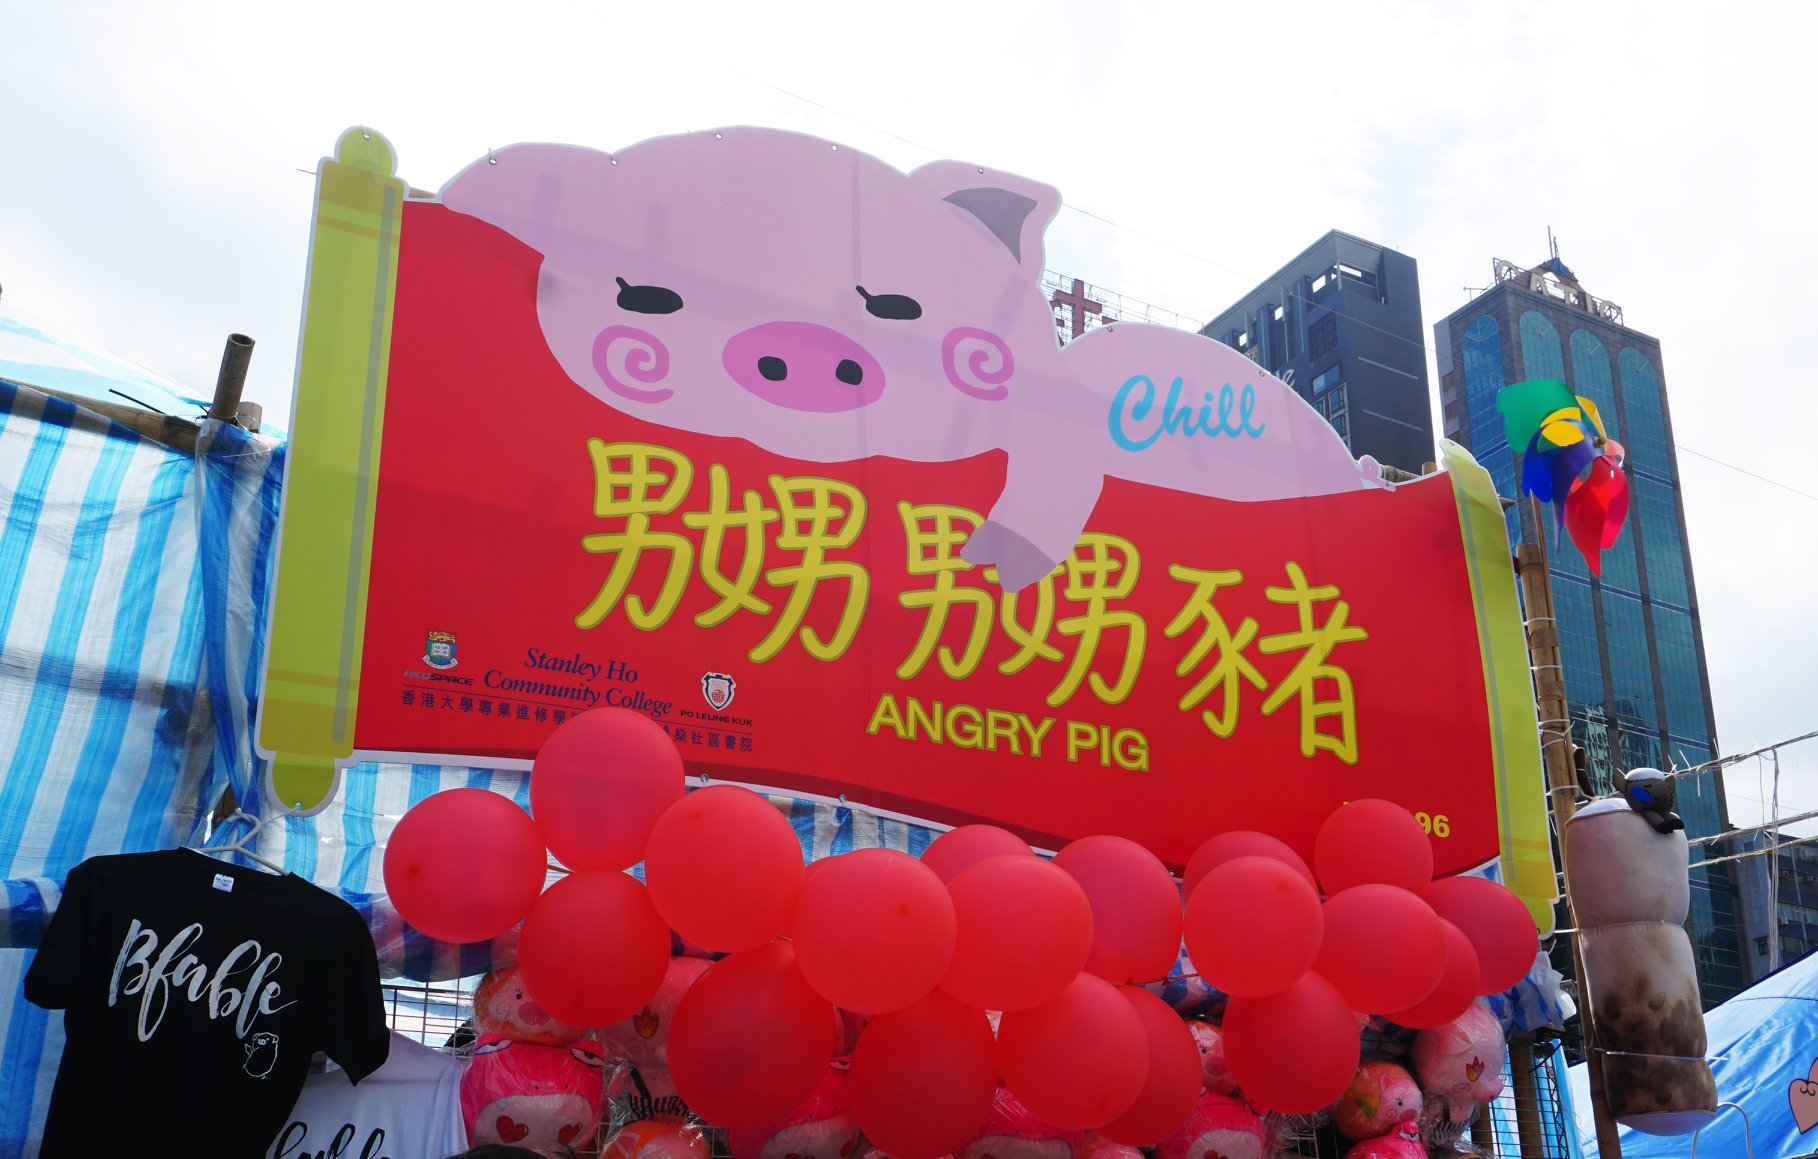 Young Entrepreneur 2019 - Angry Pig - Photo - 1